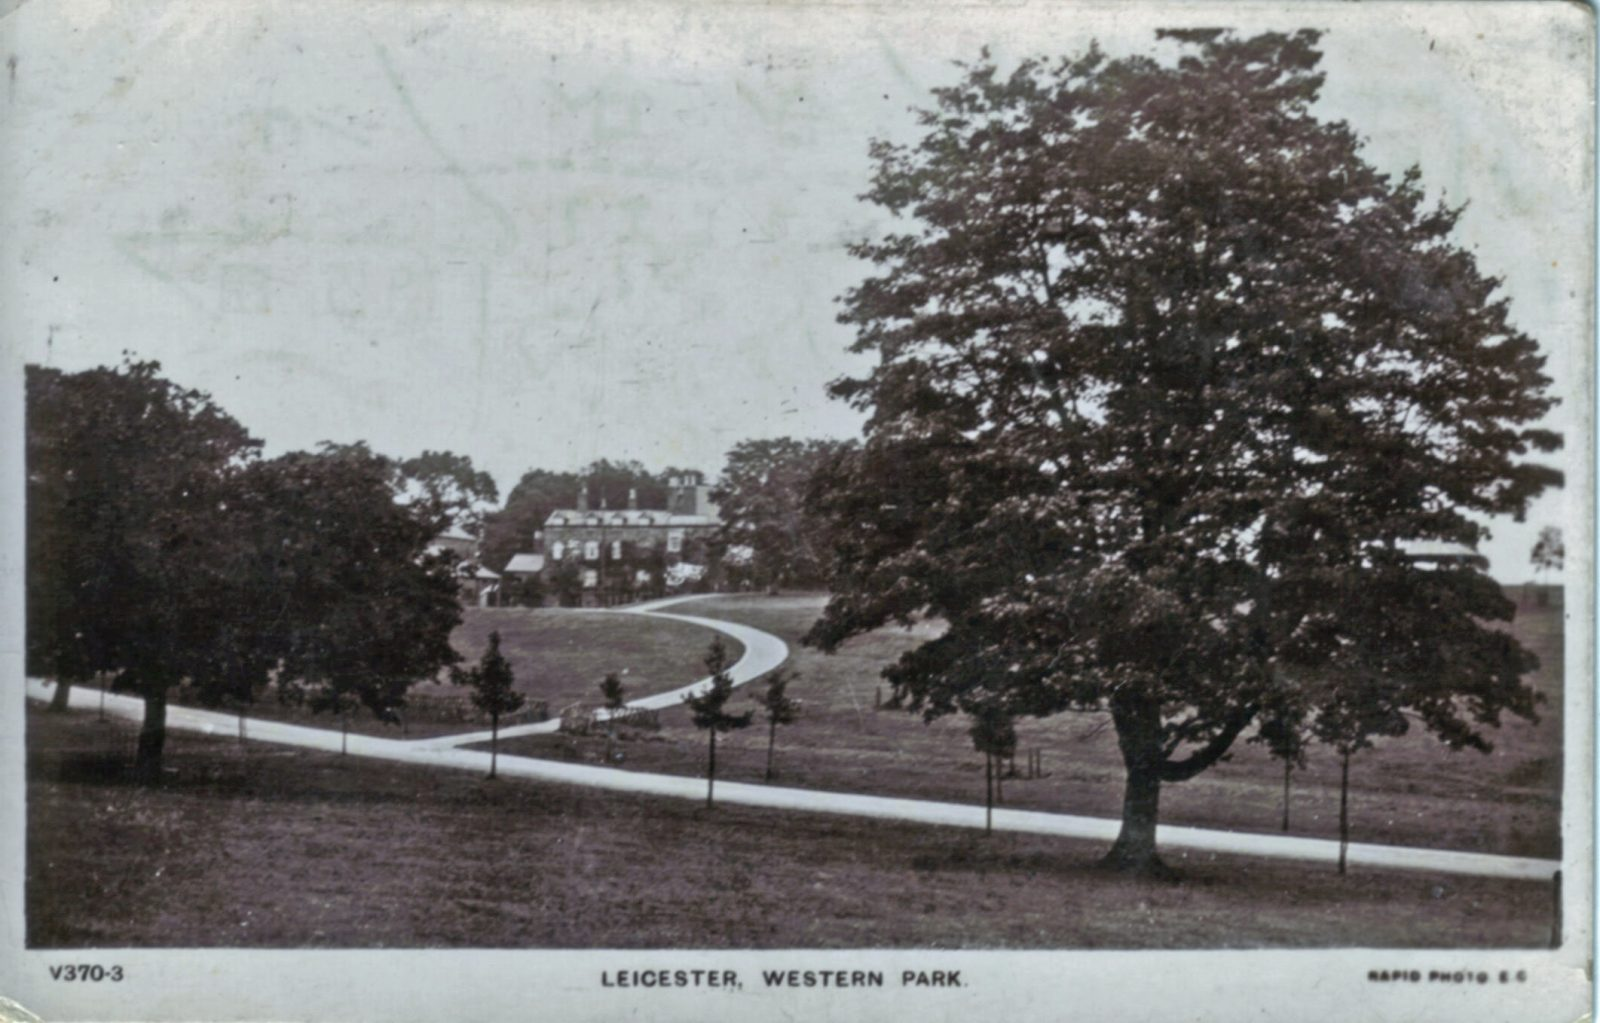 Western Park, Leicester. 1901-1920: Path leading to the Old Hall. Foreground tree. Posted 1904-10 (File:1090)